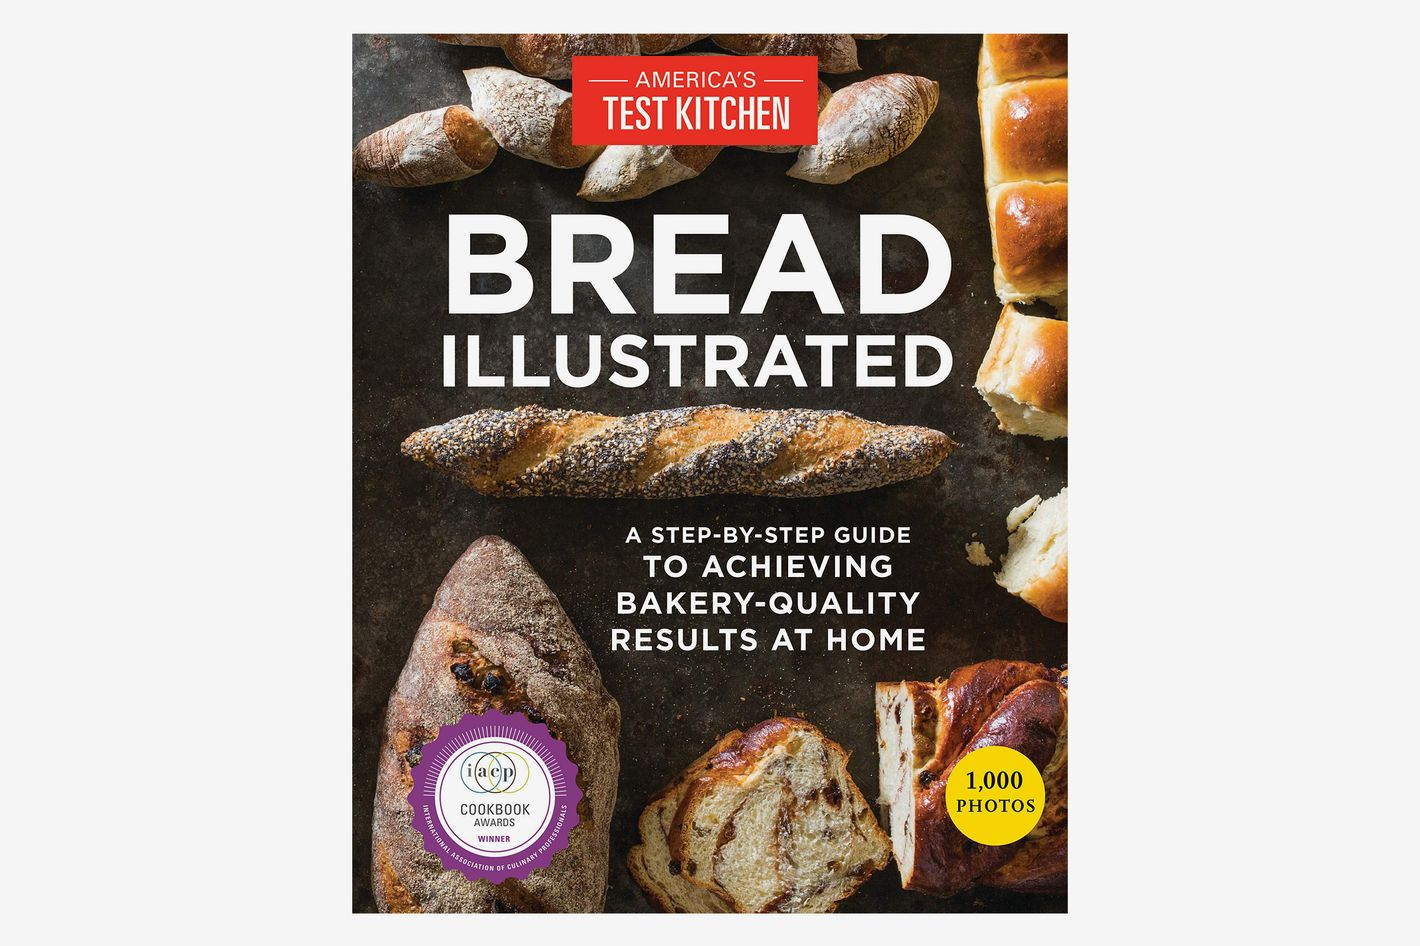 EmBread Illustrated A Step By Guide To Achieving Bakery